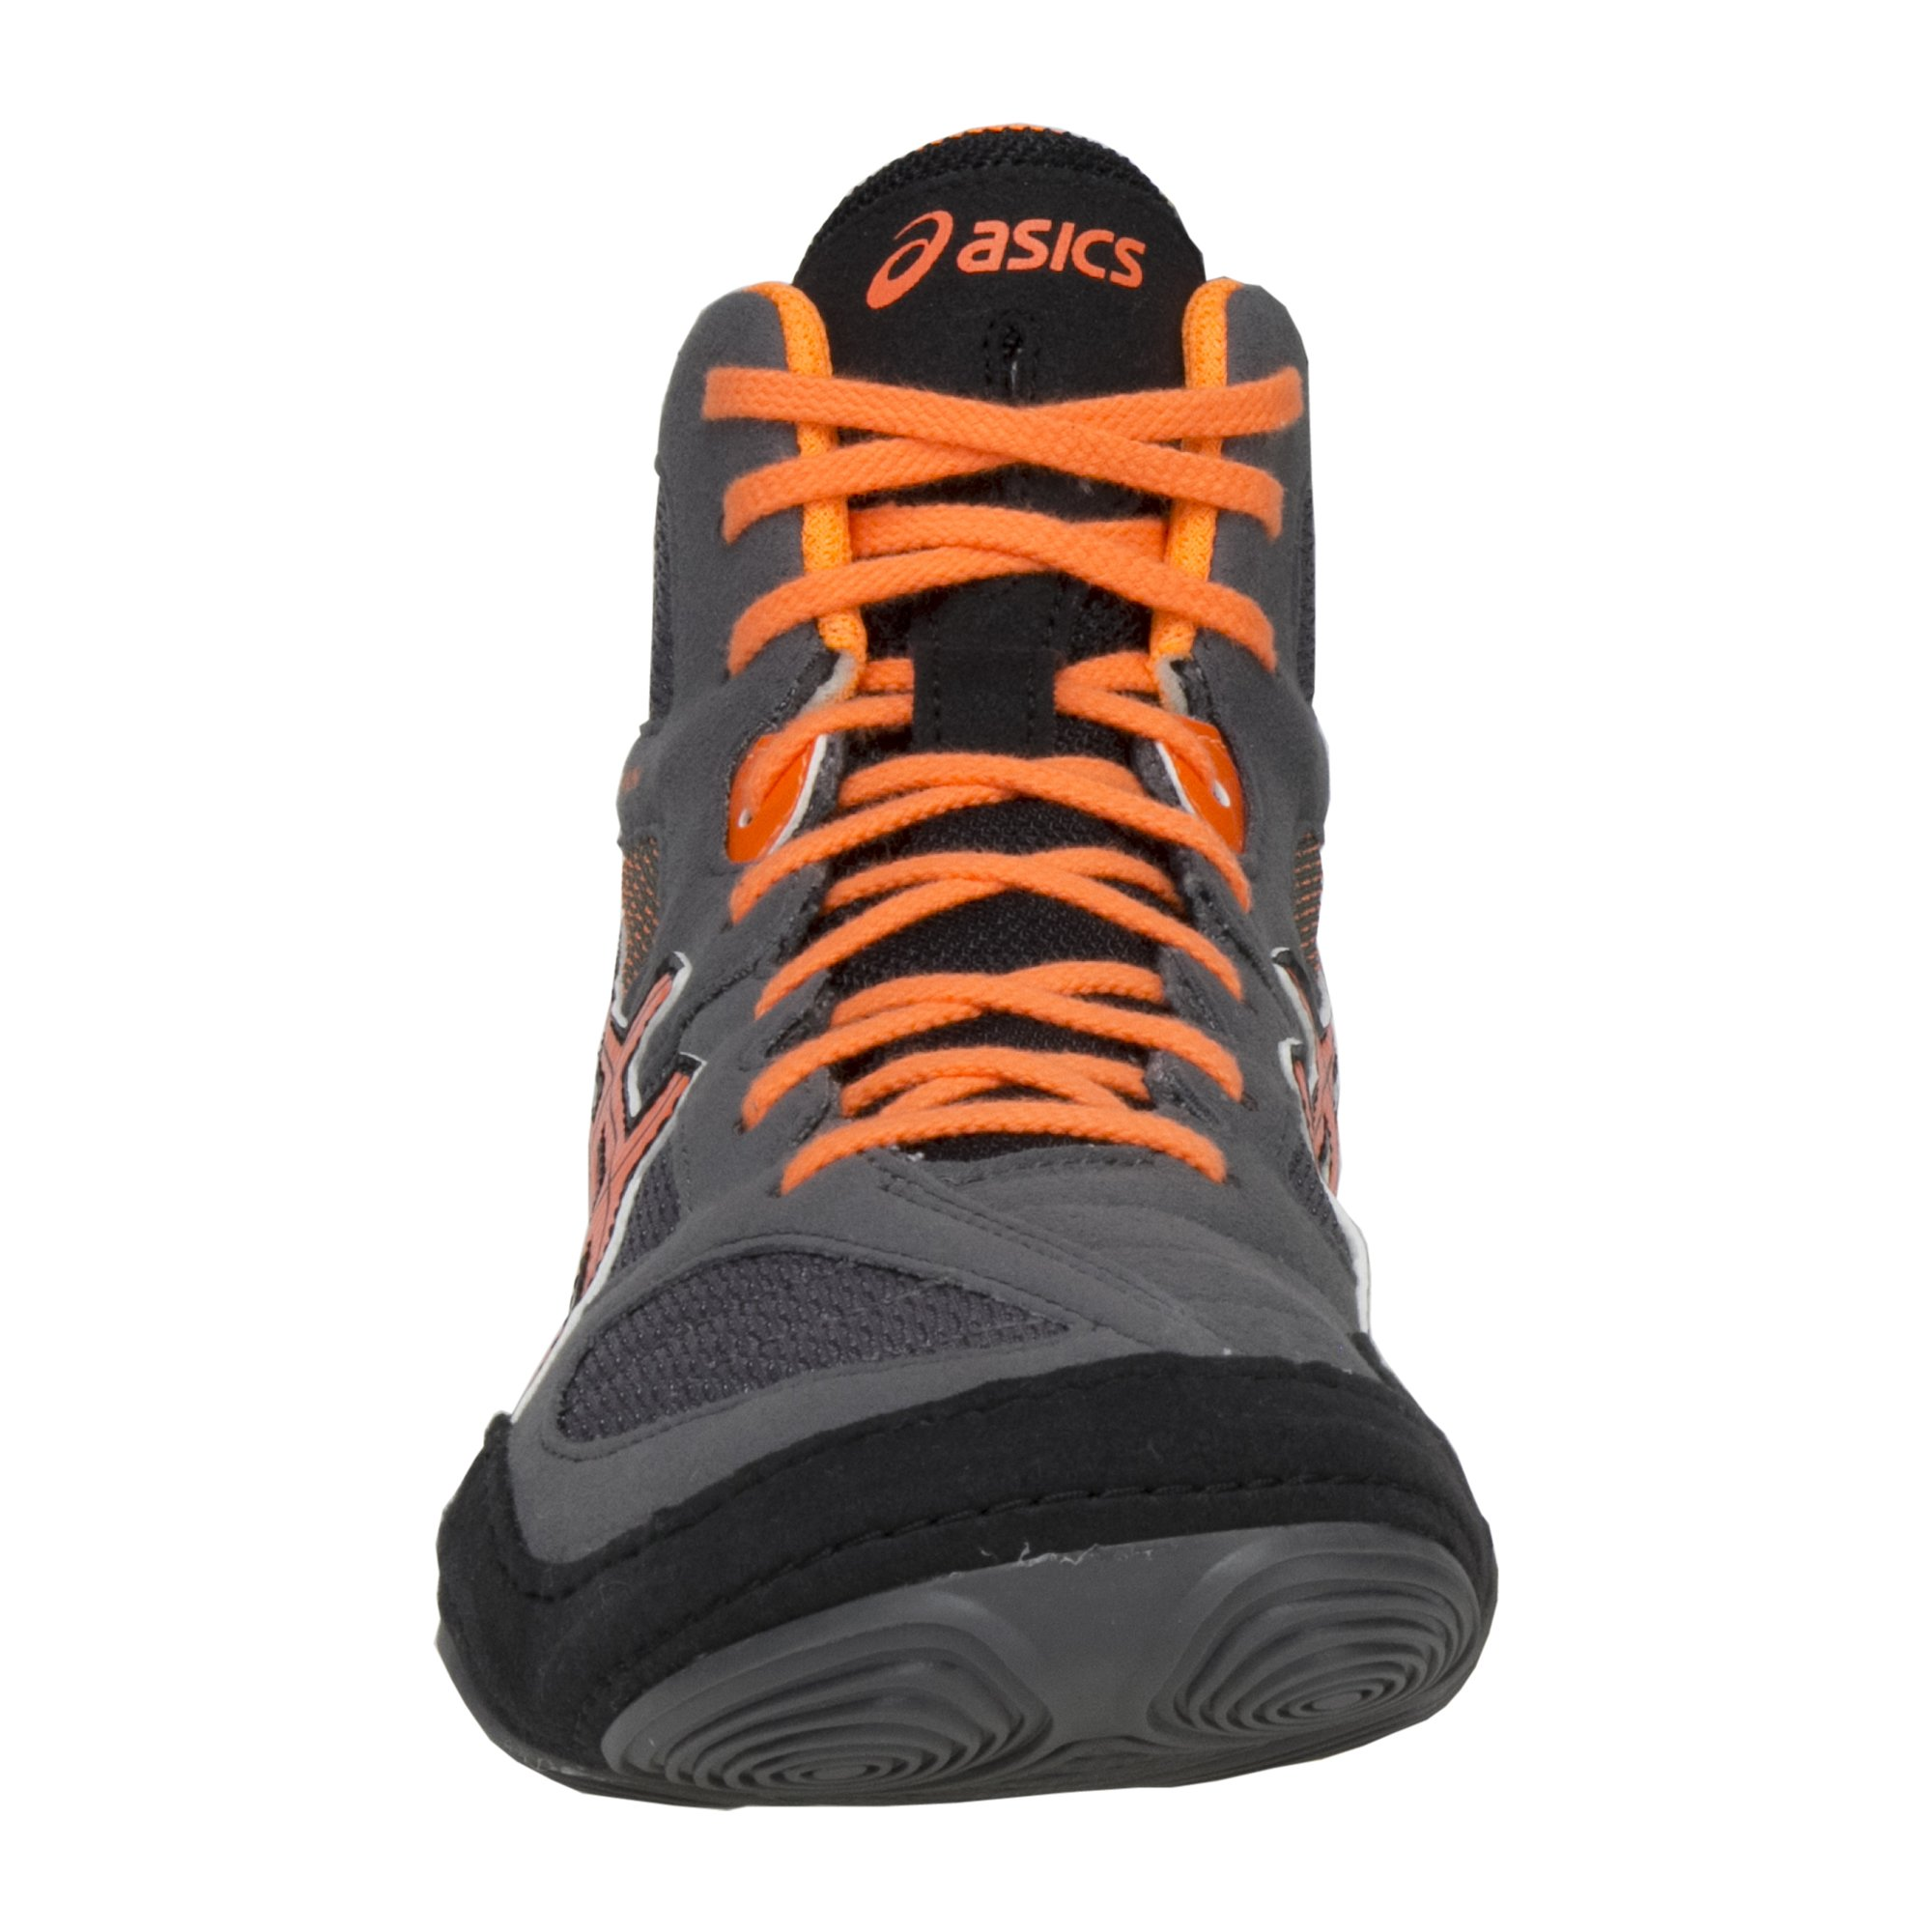 Asics Snapdown Wrestling Shoes Review